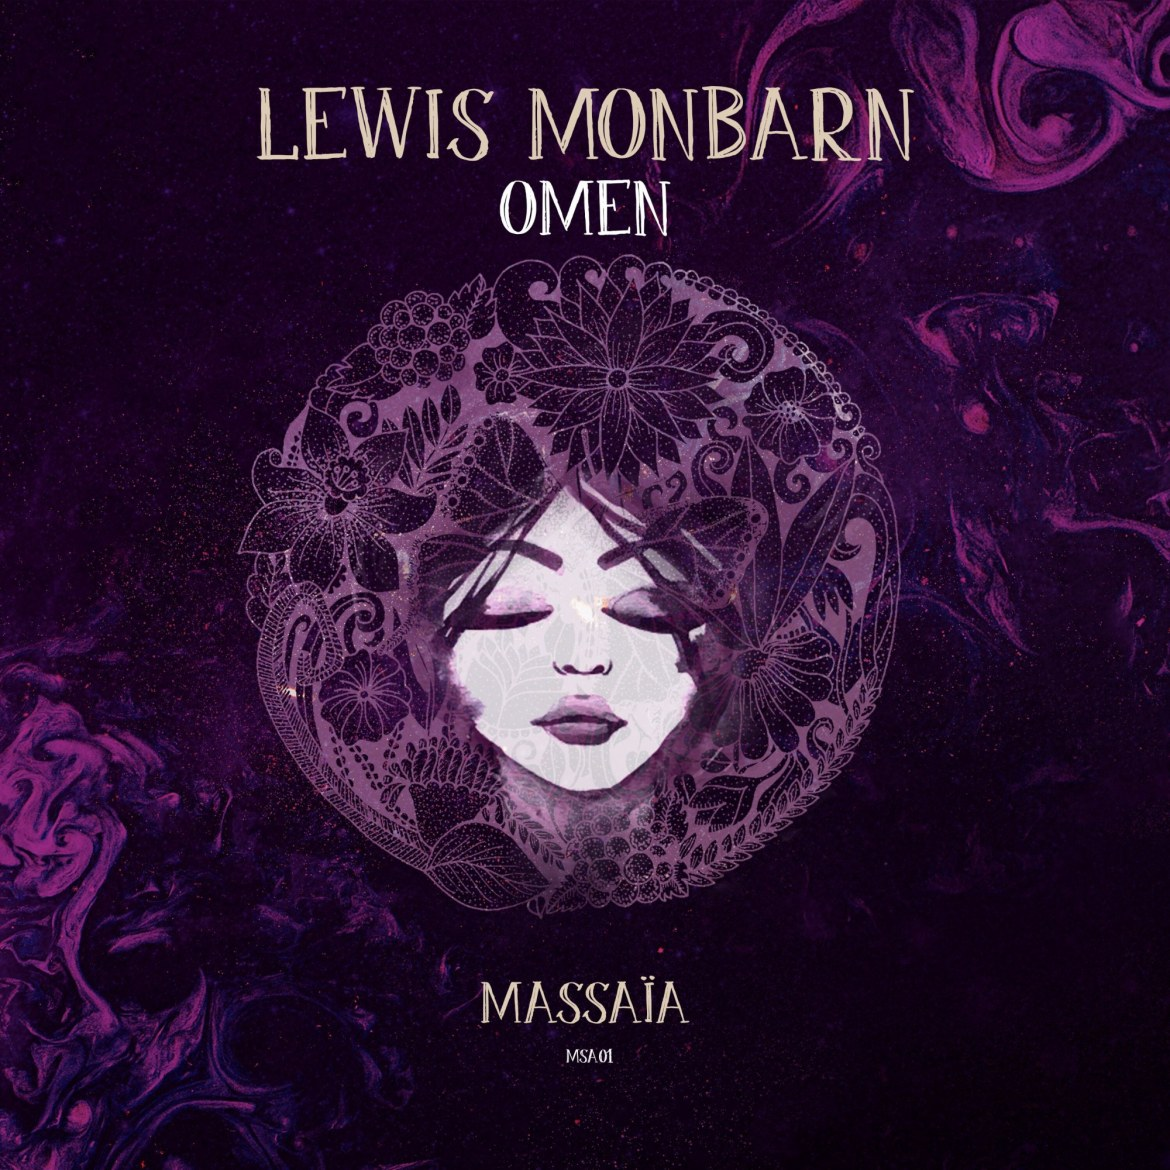 Finding it's way into Africa with it's jungle inspired percussion and ancient tribal feel, 'Lewis Monbarn's 'Omen' is on the 'Bafana FM' playlist now!